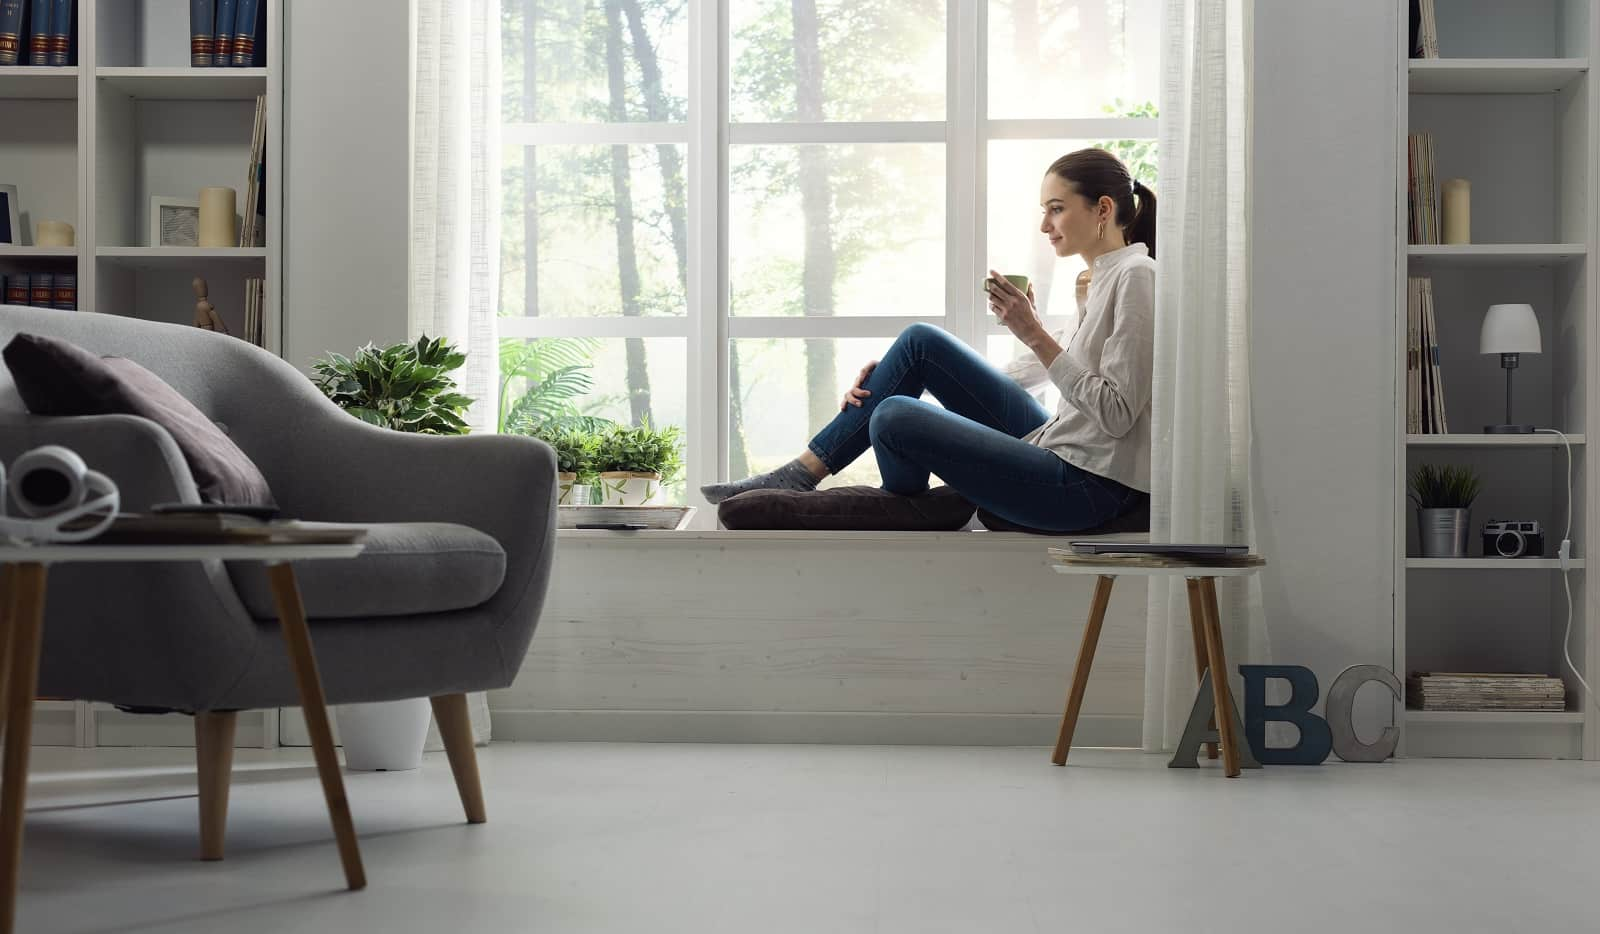 15 Simple Changes That Can Make Your Living Room Much Cozier. White colored Scandi styled living with large sash window and gray furniture in wooden legs